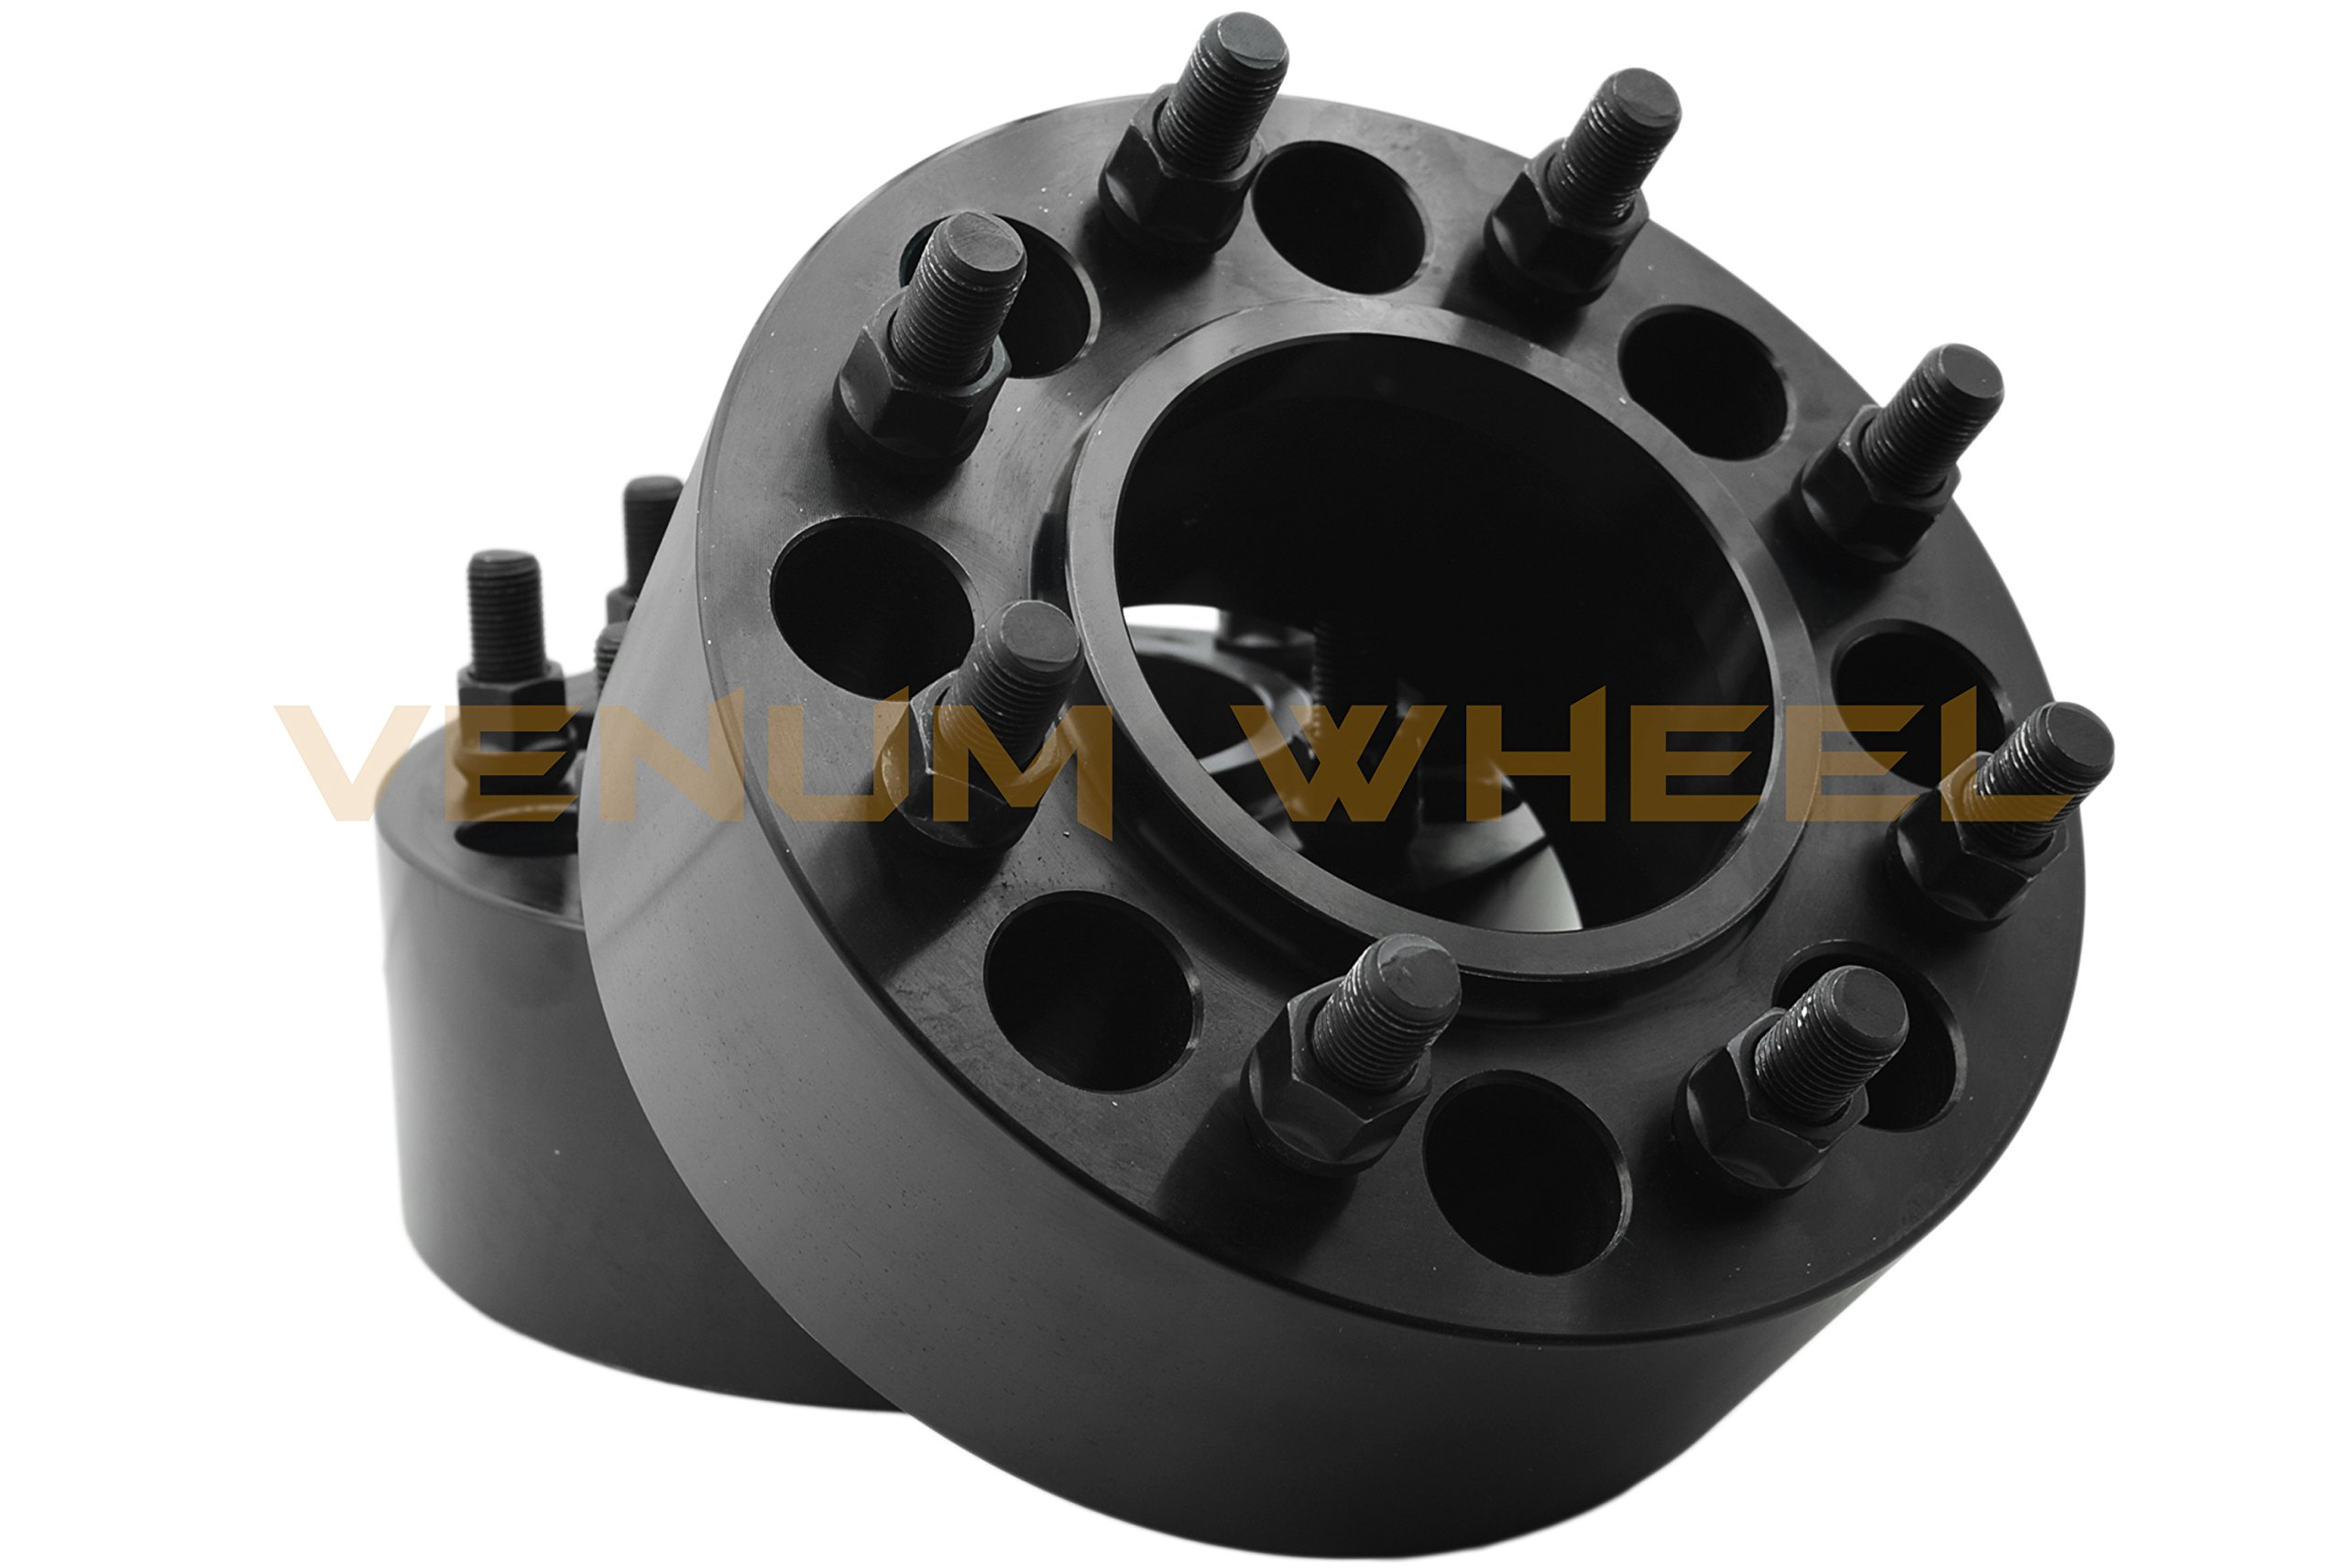 2 Pc 8x6.5'' Hub Centric Wheel Adapters 3 Inches Thick (REAR AXLE ONLY) Anodized Black For Chevy GMC 8 Lug Heavy Duty Truck Only Made In The USA